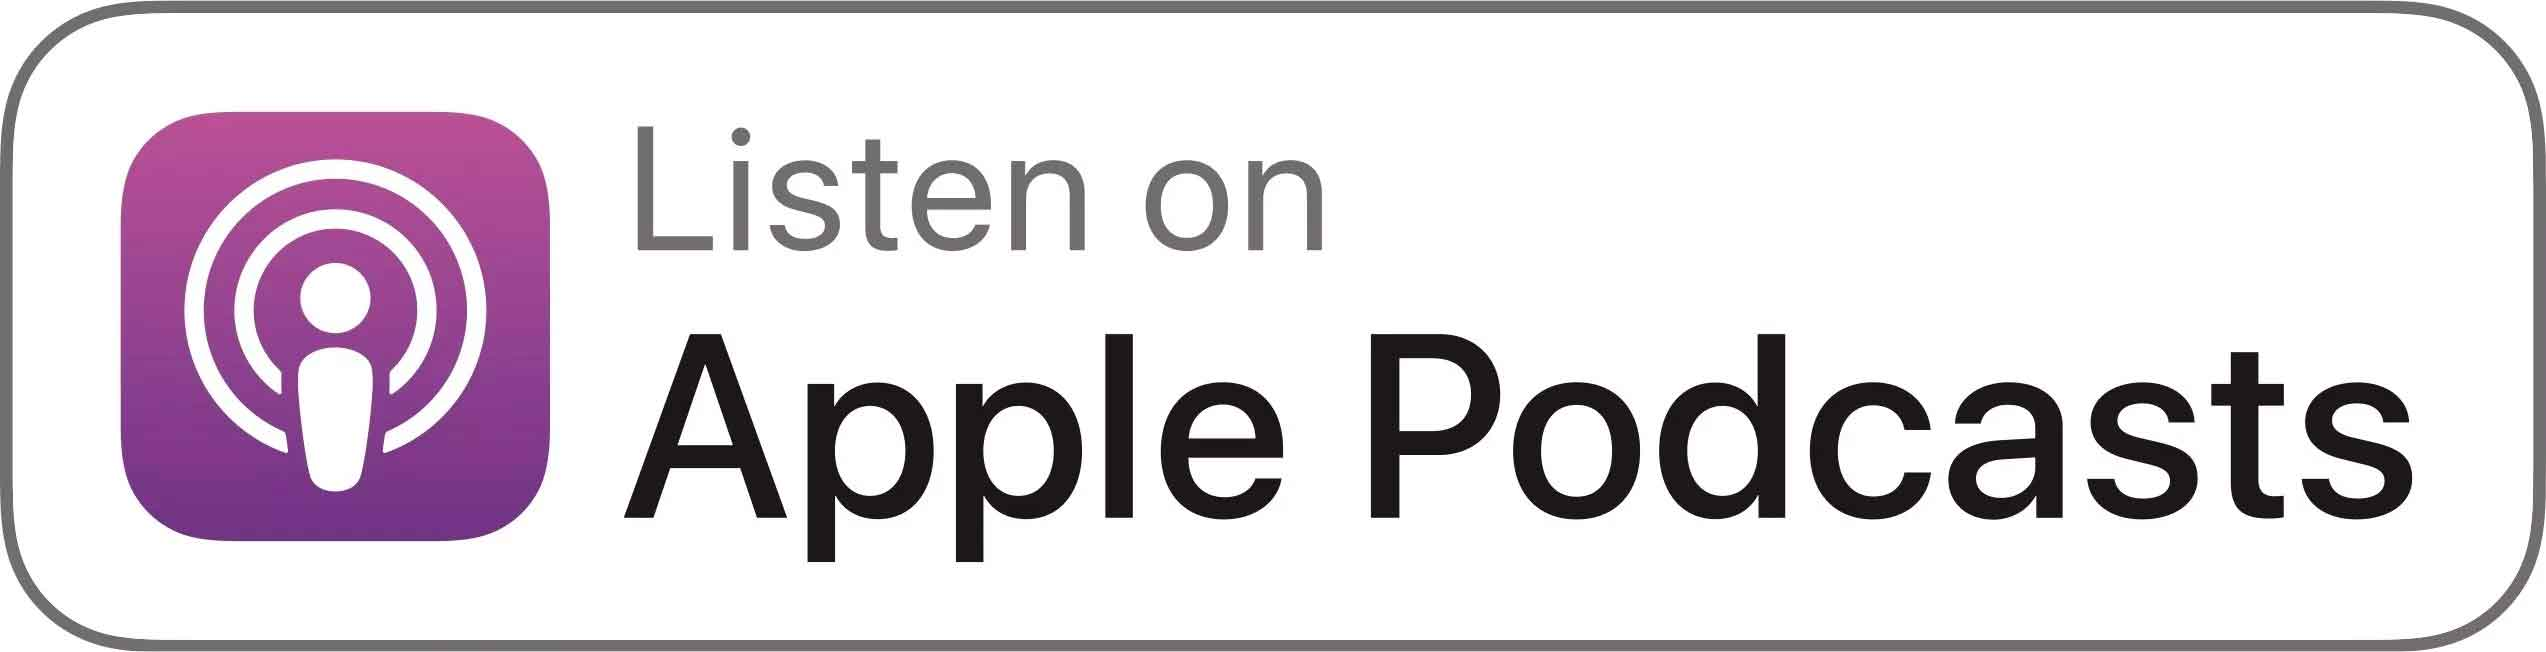 click here to go to our Apple Podcast stream